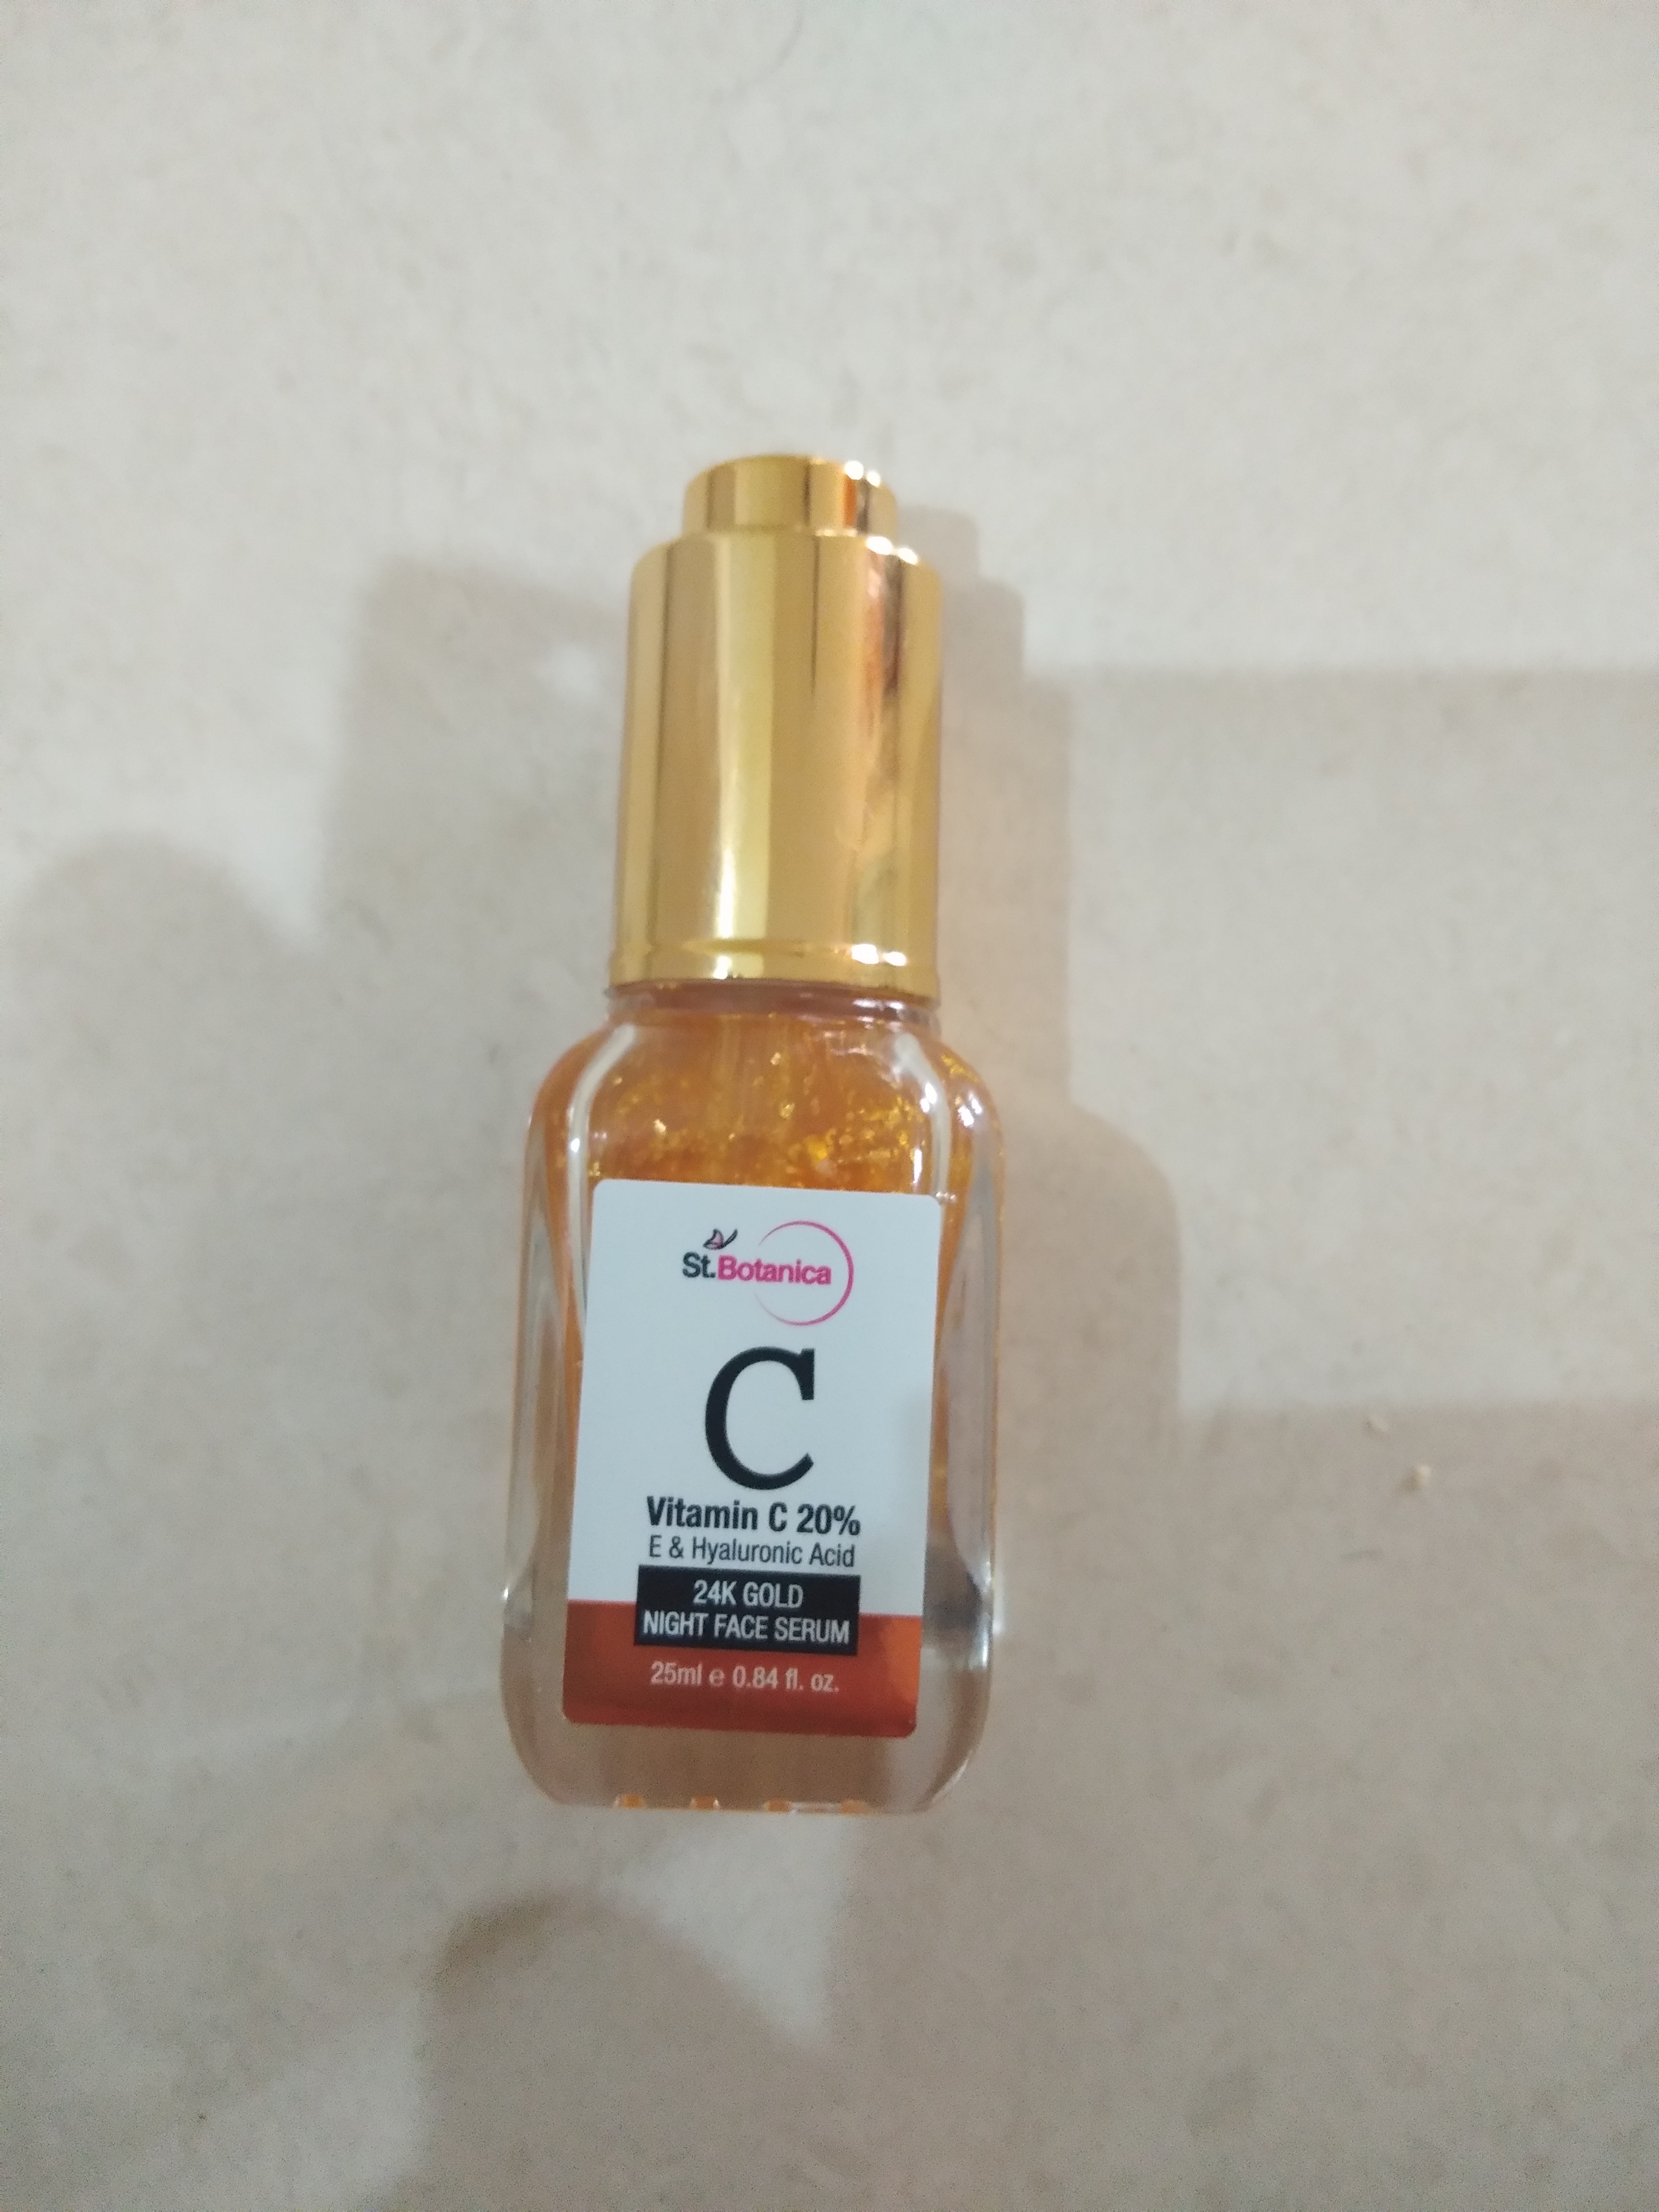 StBotanica Vitamin C 20%, E & Hyaluronic Acid 24k Gold Night Face Serum-Love it-By Nasreen